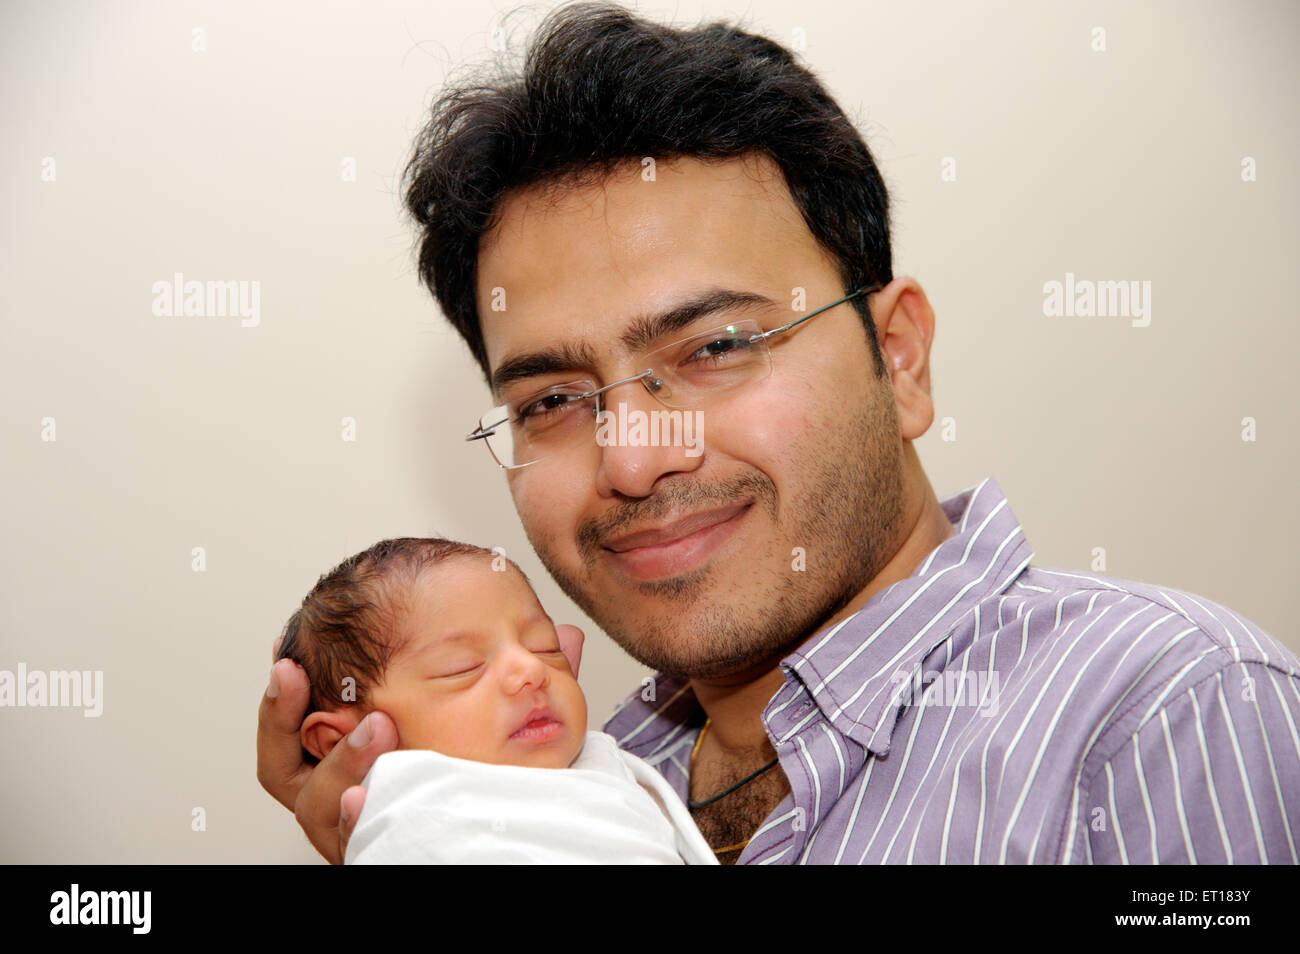 New born baby with uncle MR#736J MR#736LA - Stock Image